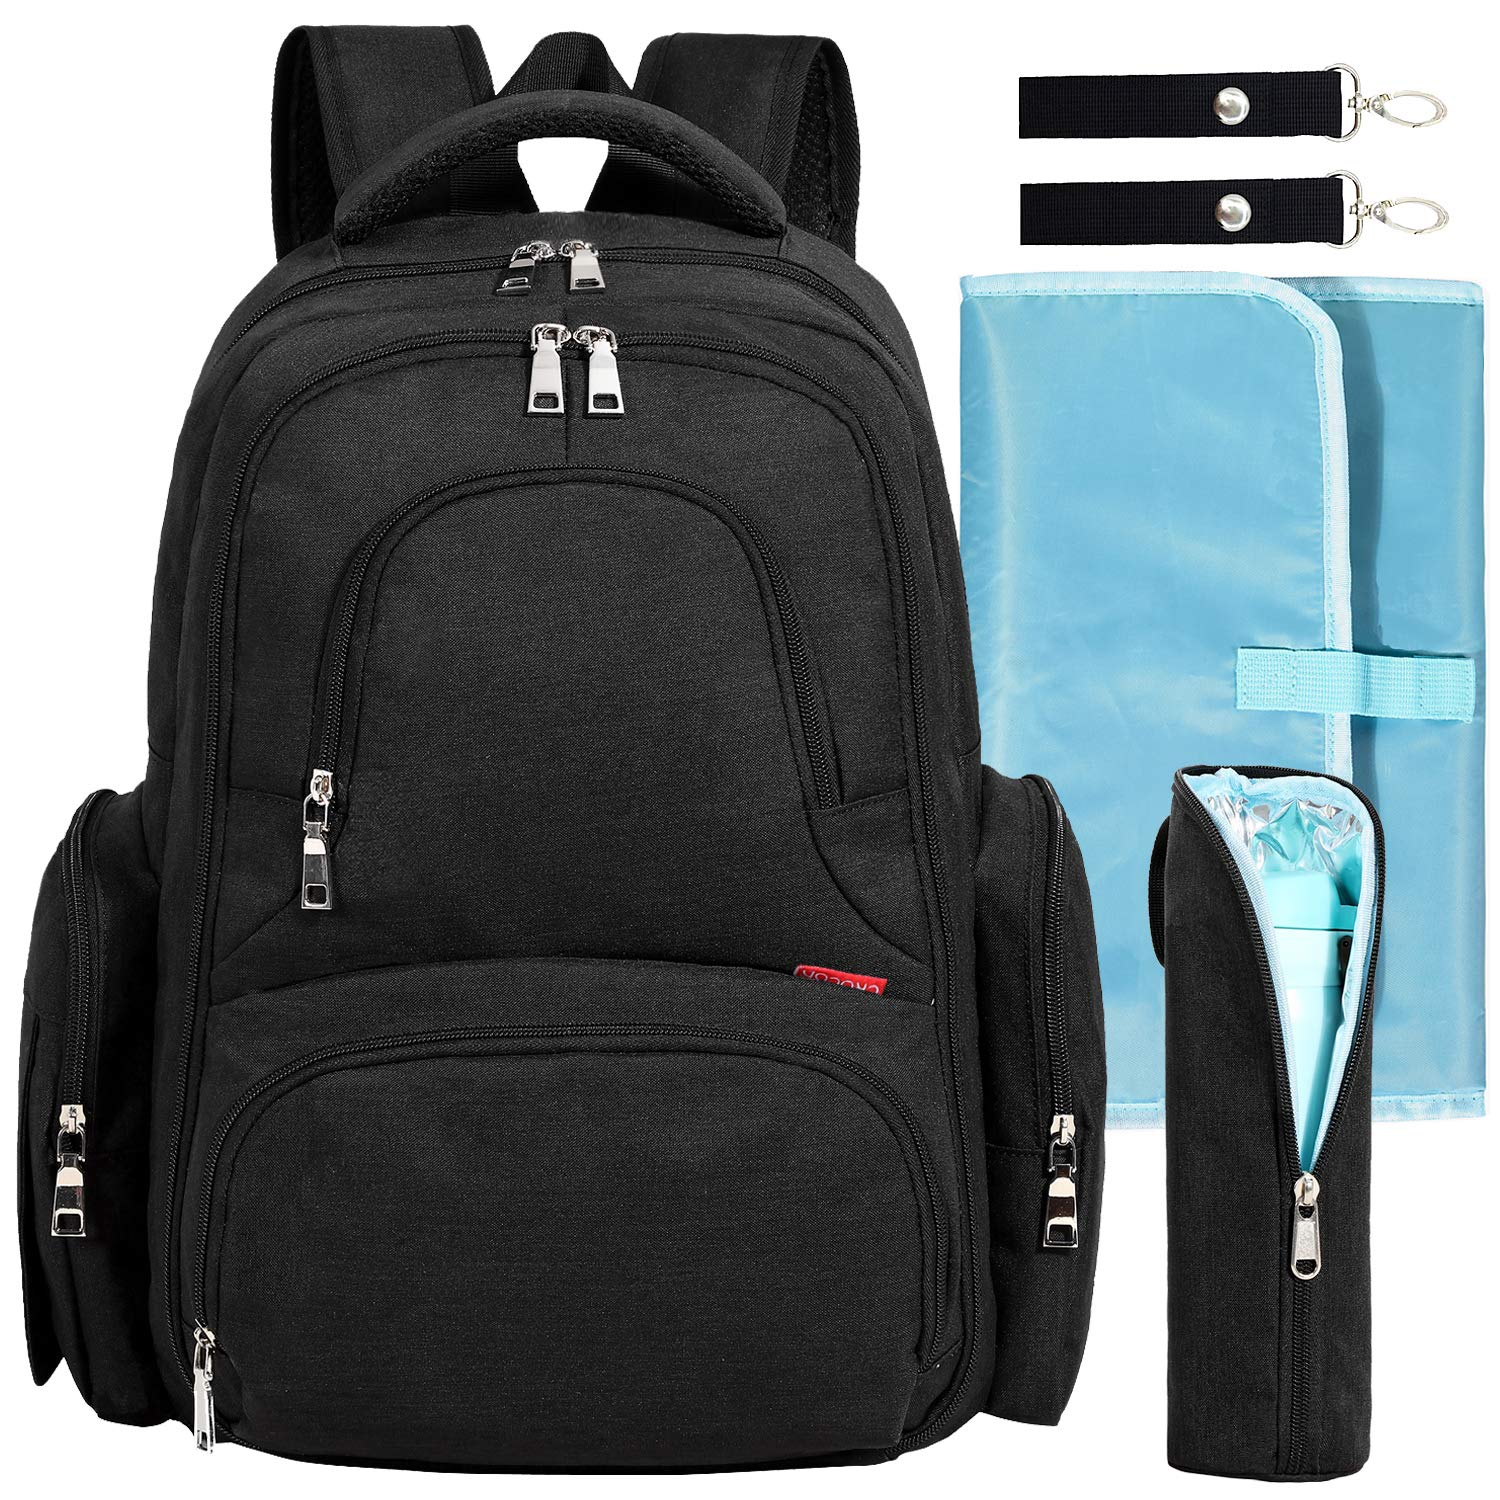 2febebdde Amazon.com   Big Sale - Baby Diaper Bag Waterproof Travel Diaper Backpack  with Changing Pad and Stroller Clips (Black)   Baby